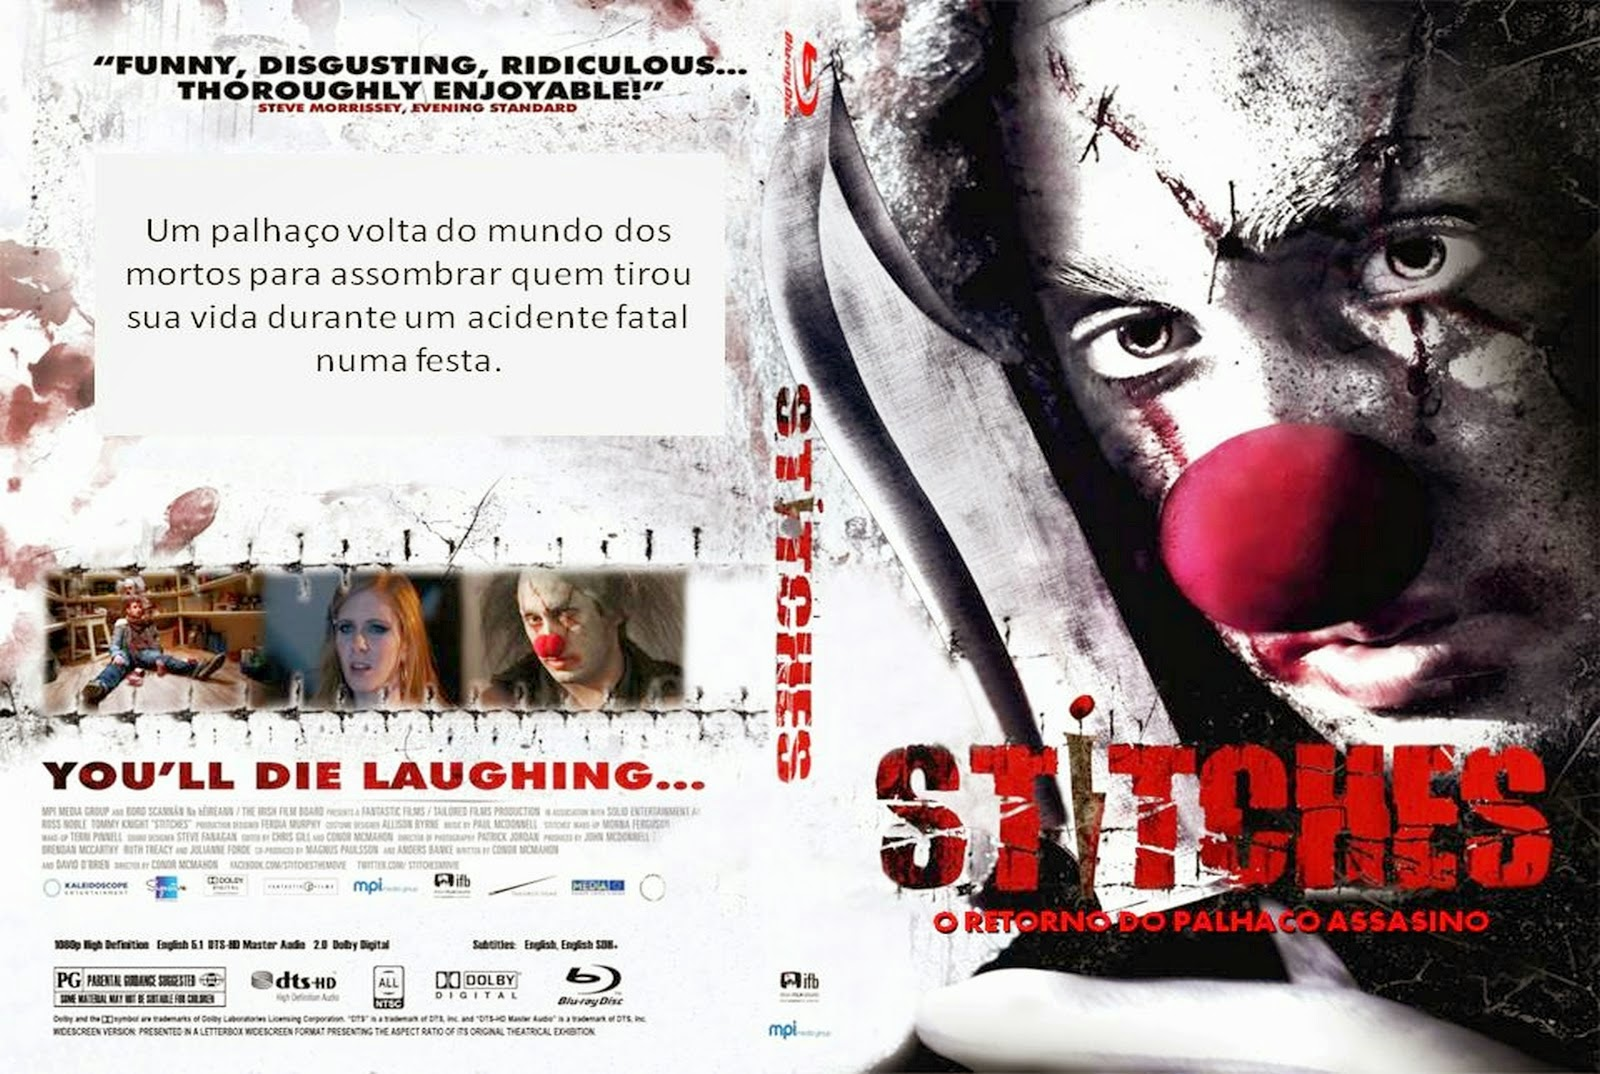 Stitches - O Retorno do Palhaço Assassino DVD Capa